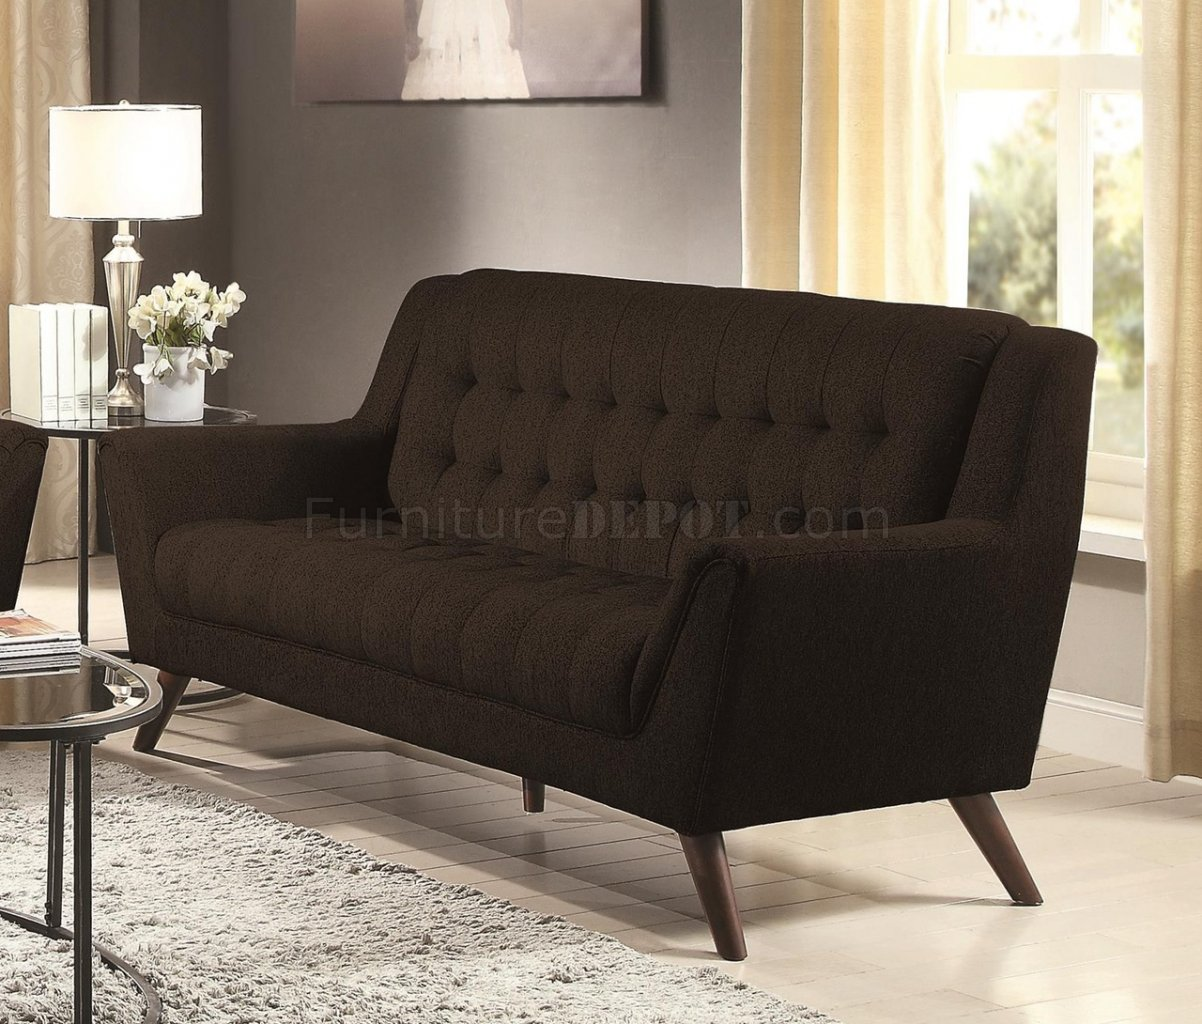 natalia leather and chenille sofa grey power reclining baby set in black 511034 by coaster w options